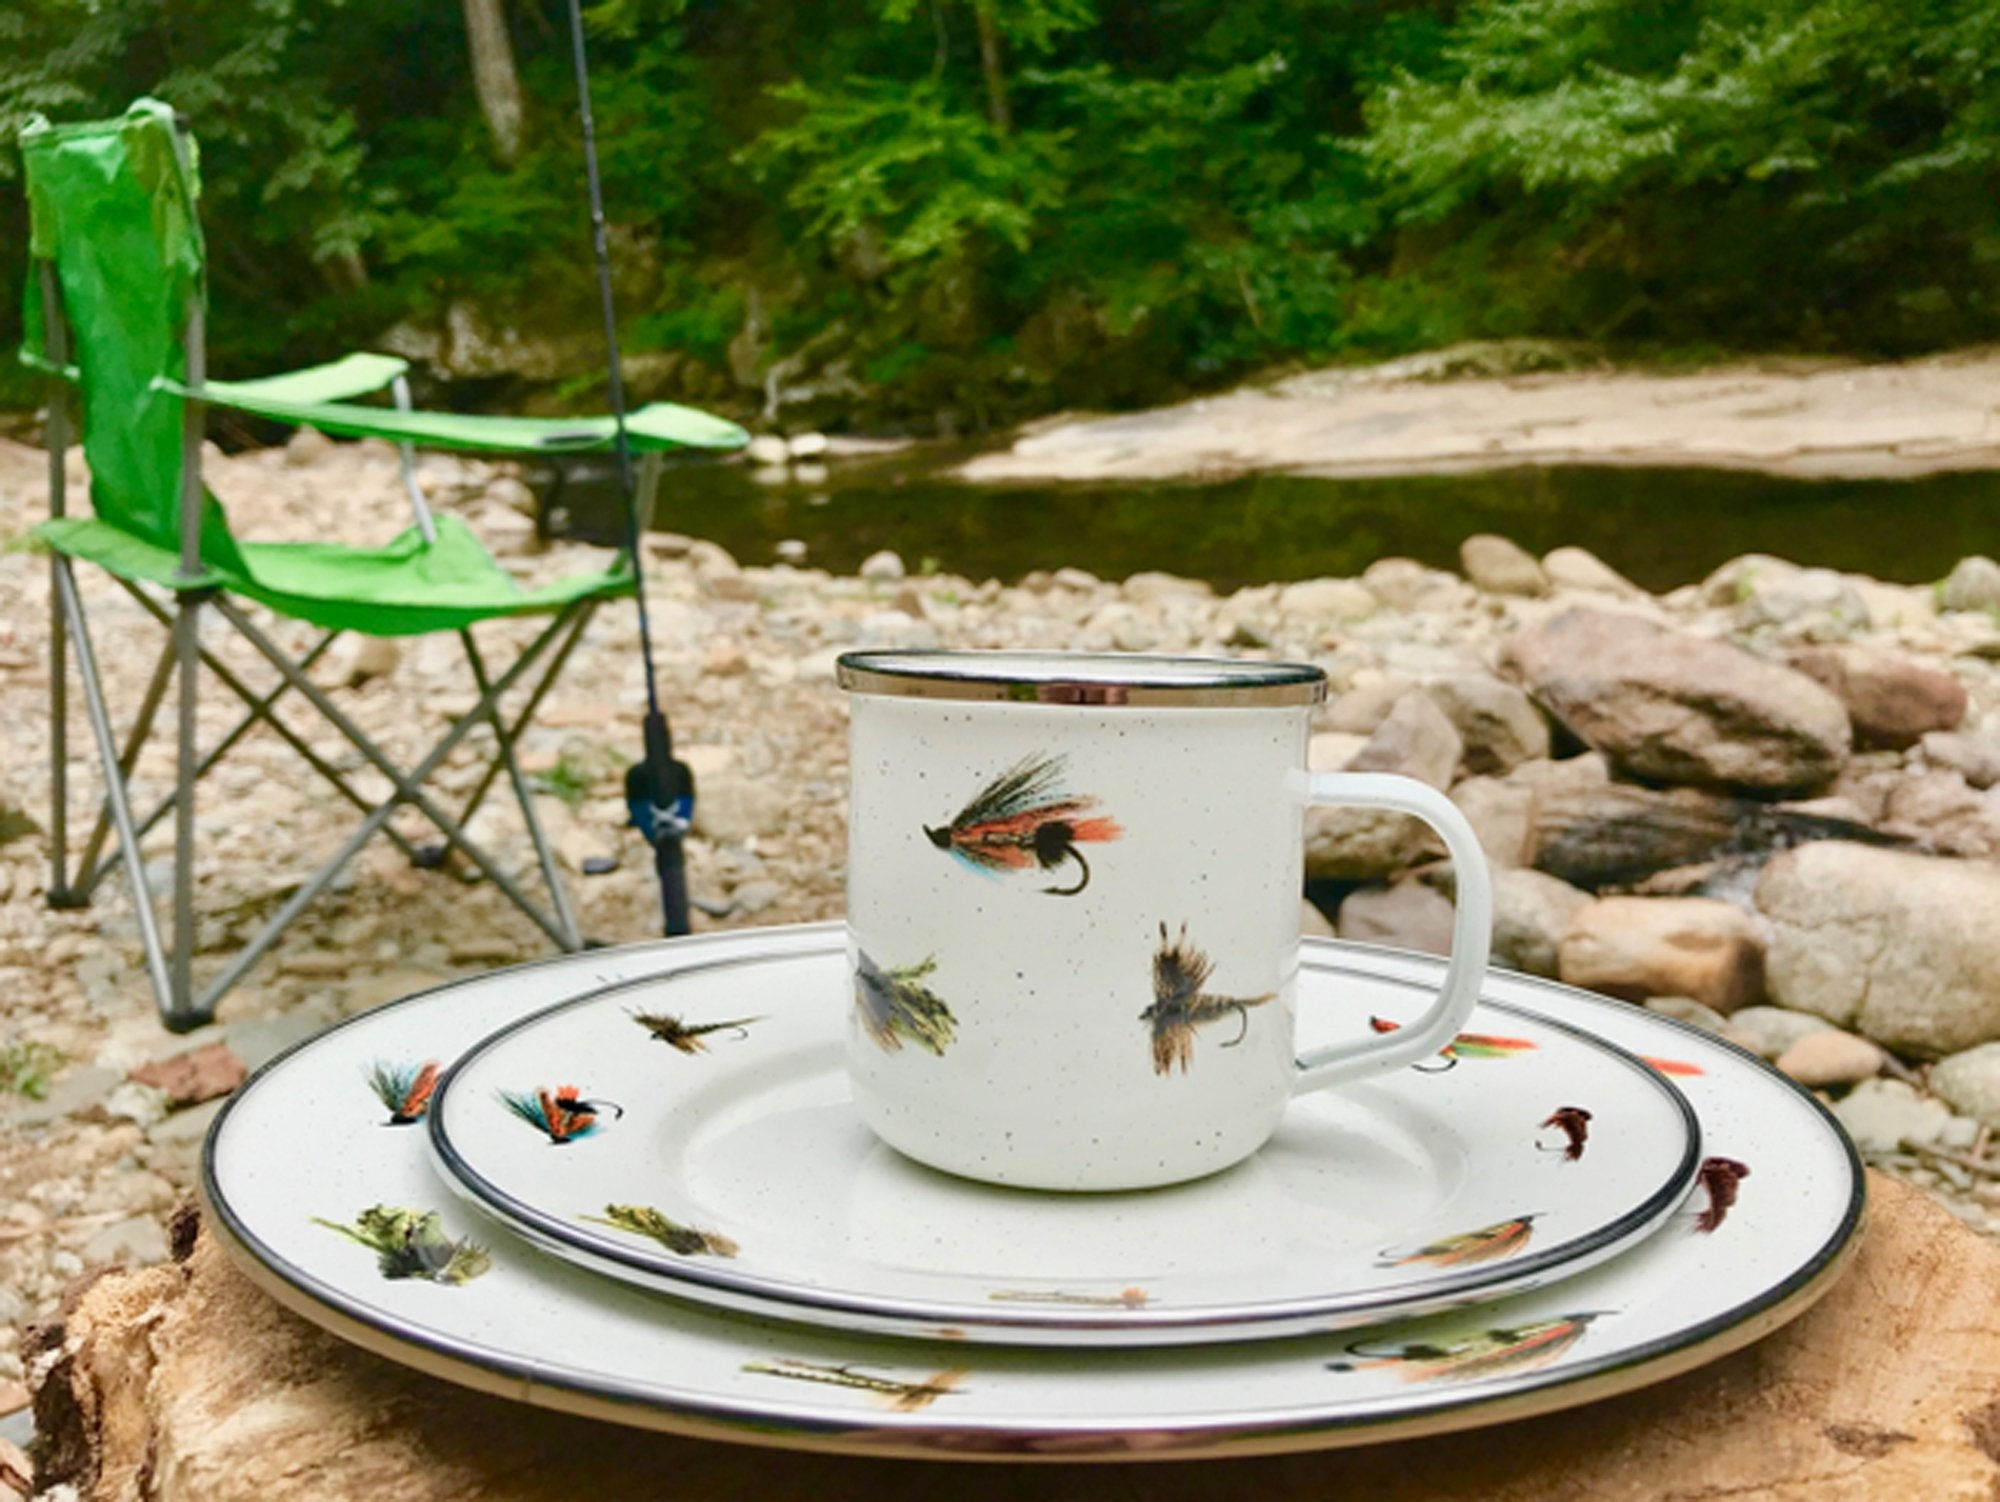 FF05S4 - Set of 4 Fishing Fly Adult Mugs Image 2